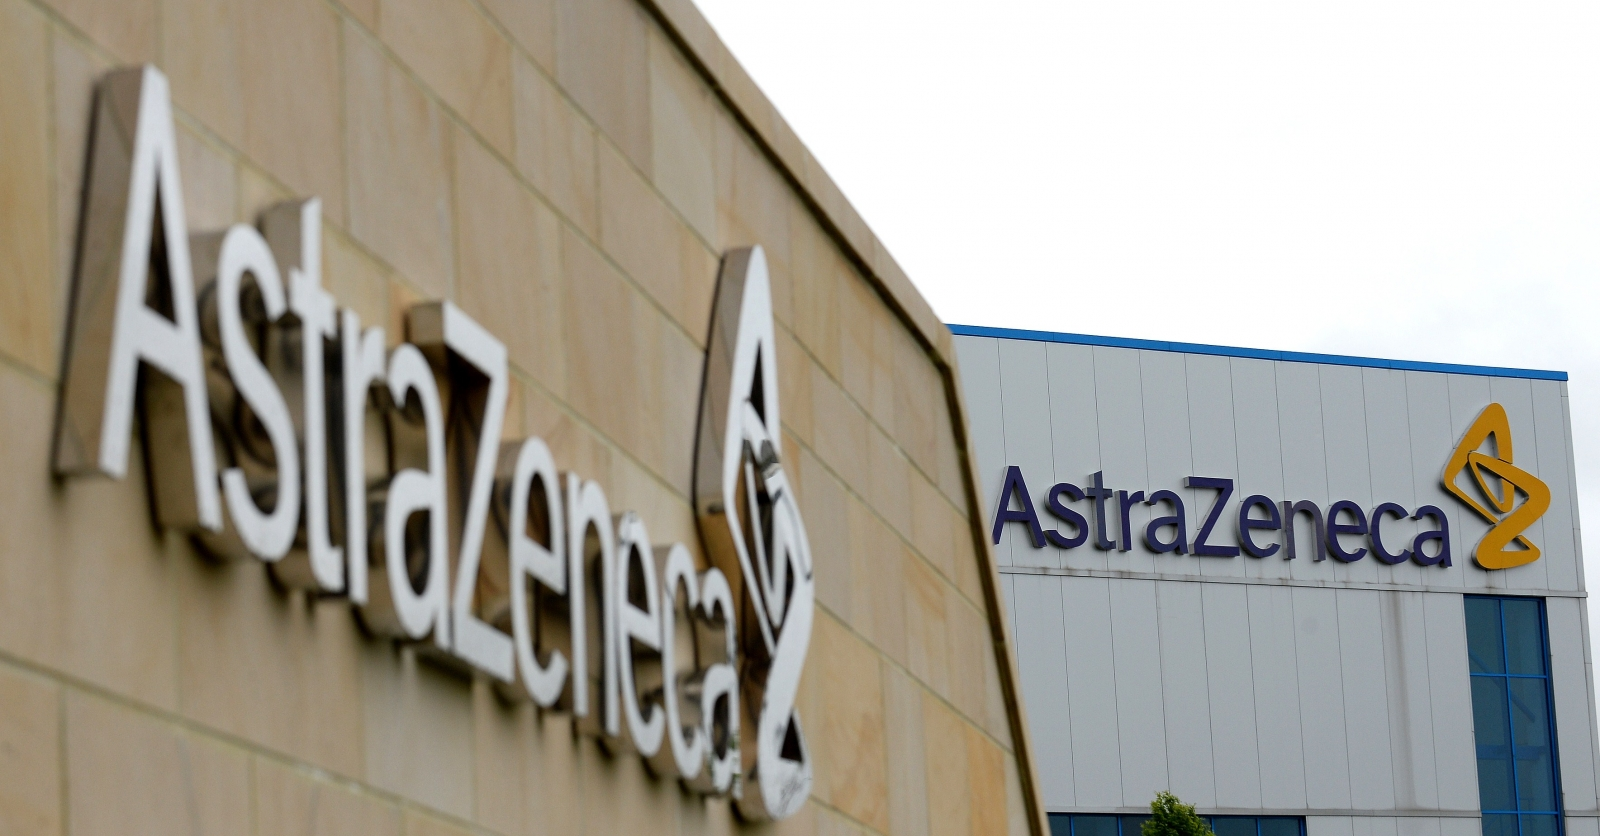 AstraZeneca sells Europe and Latin America rights for its zurampic drug to Gruenenthal for upto $230m